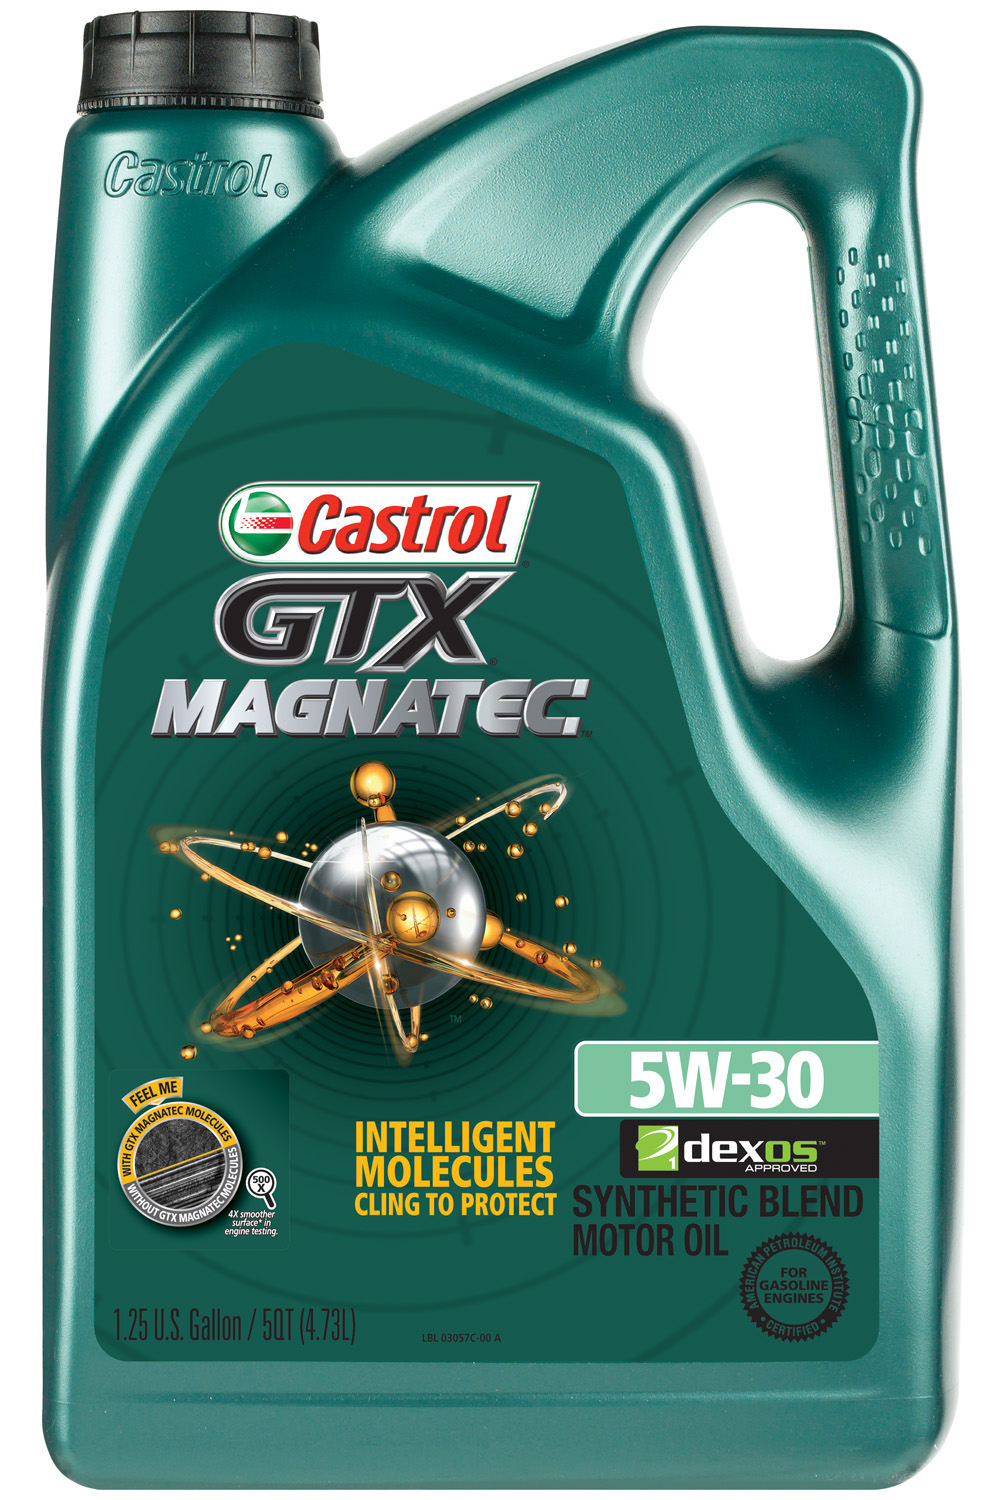 Castrol GTX MAGNATEC 5W-30 Synthetic Blend Motor Oil, 5 qt